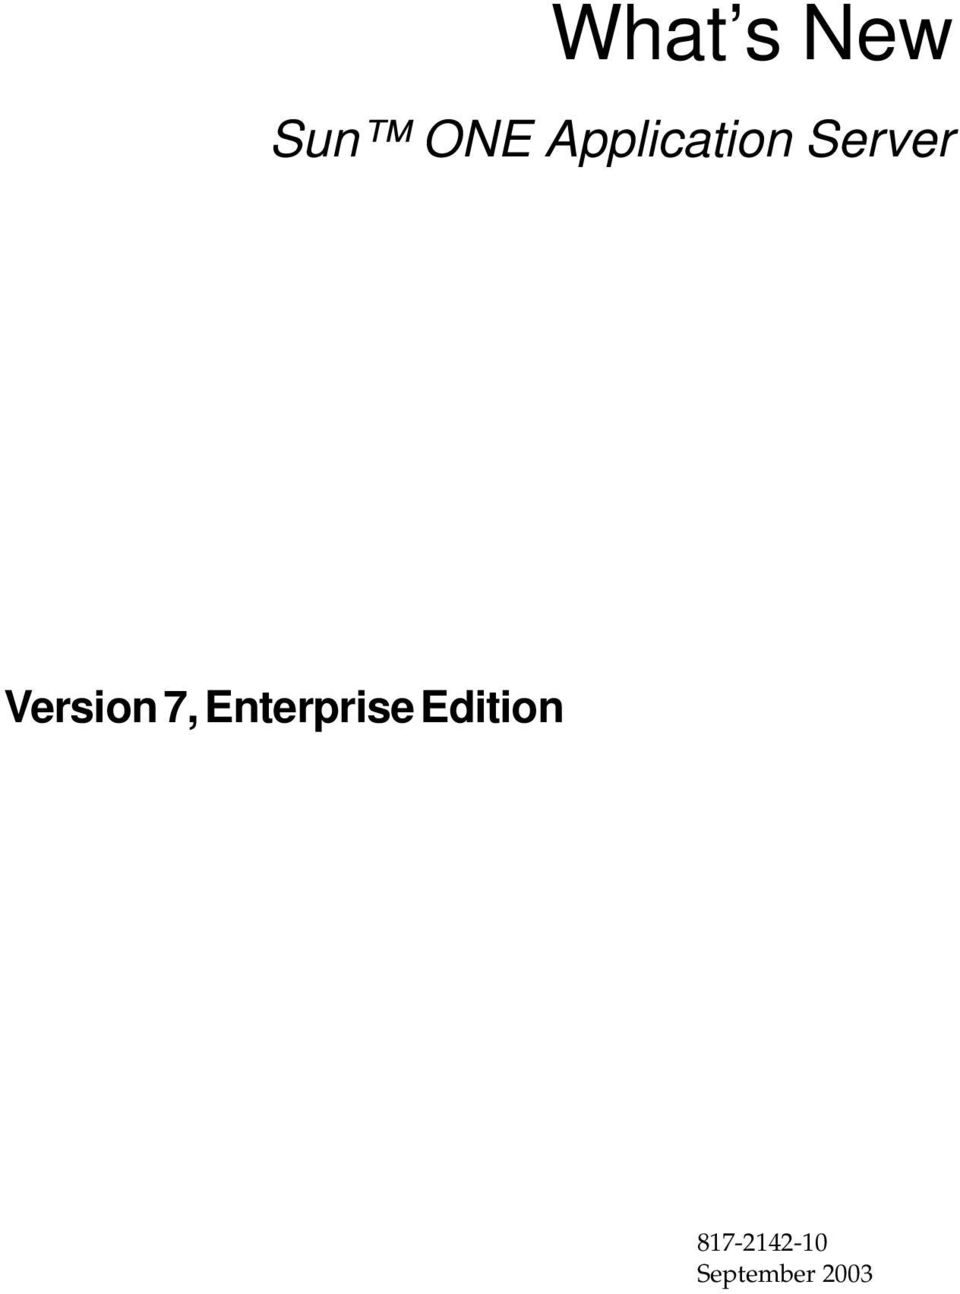 Version 7, Enterprise